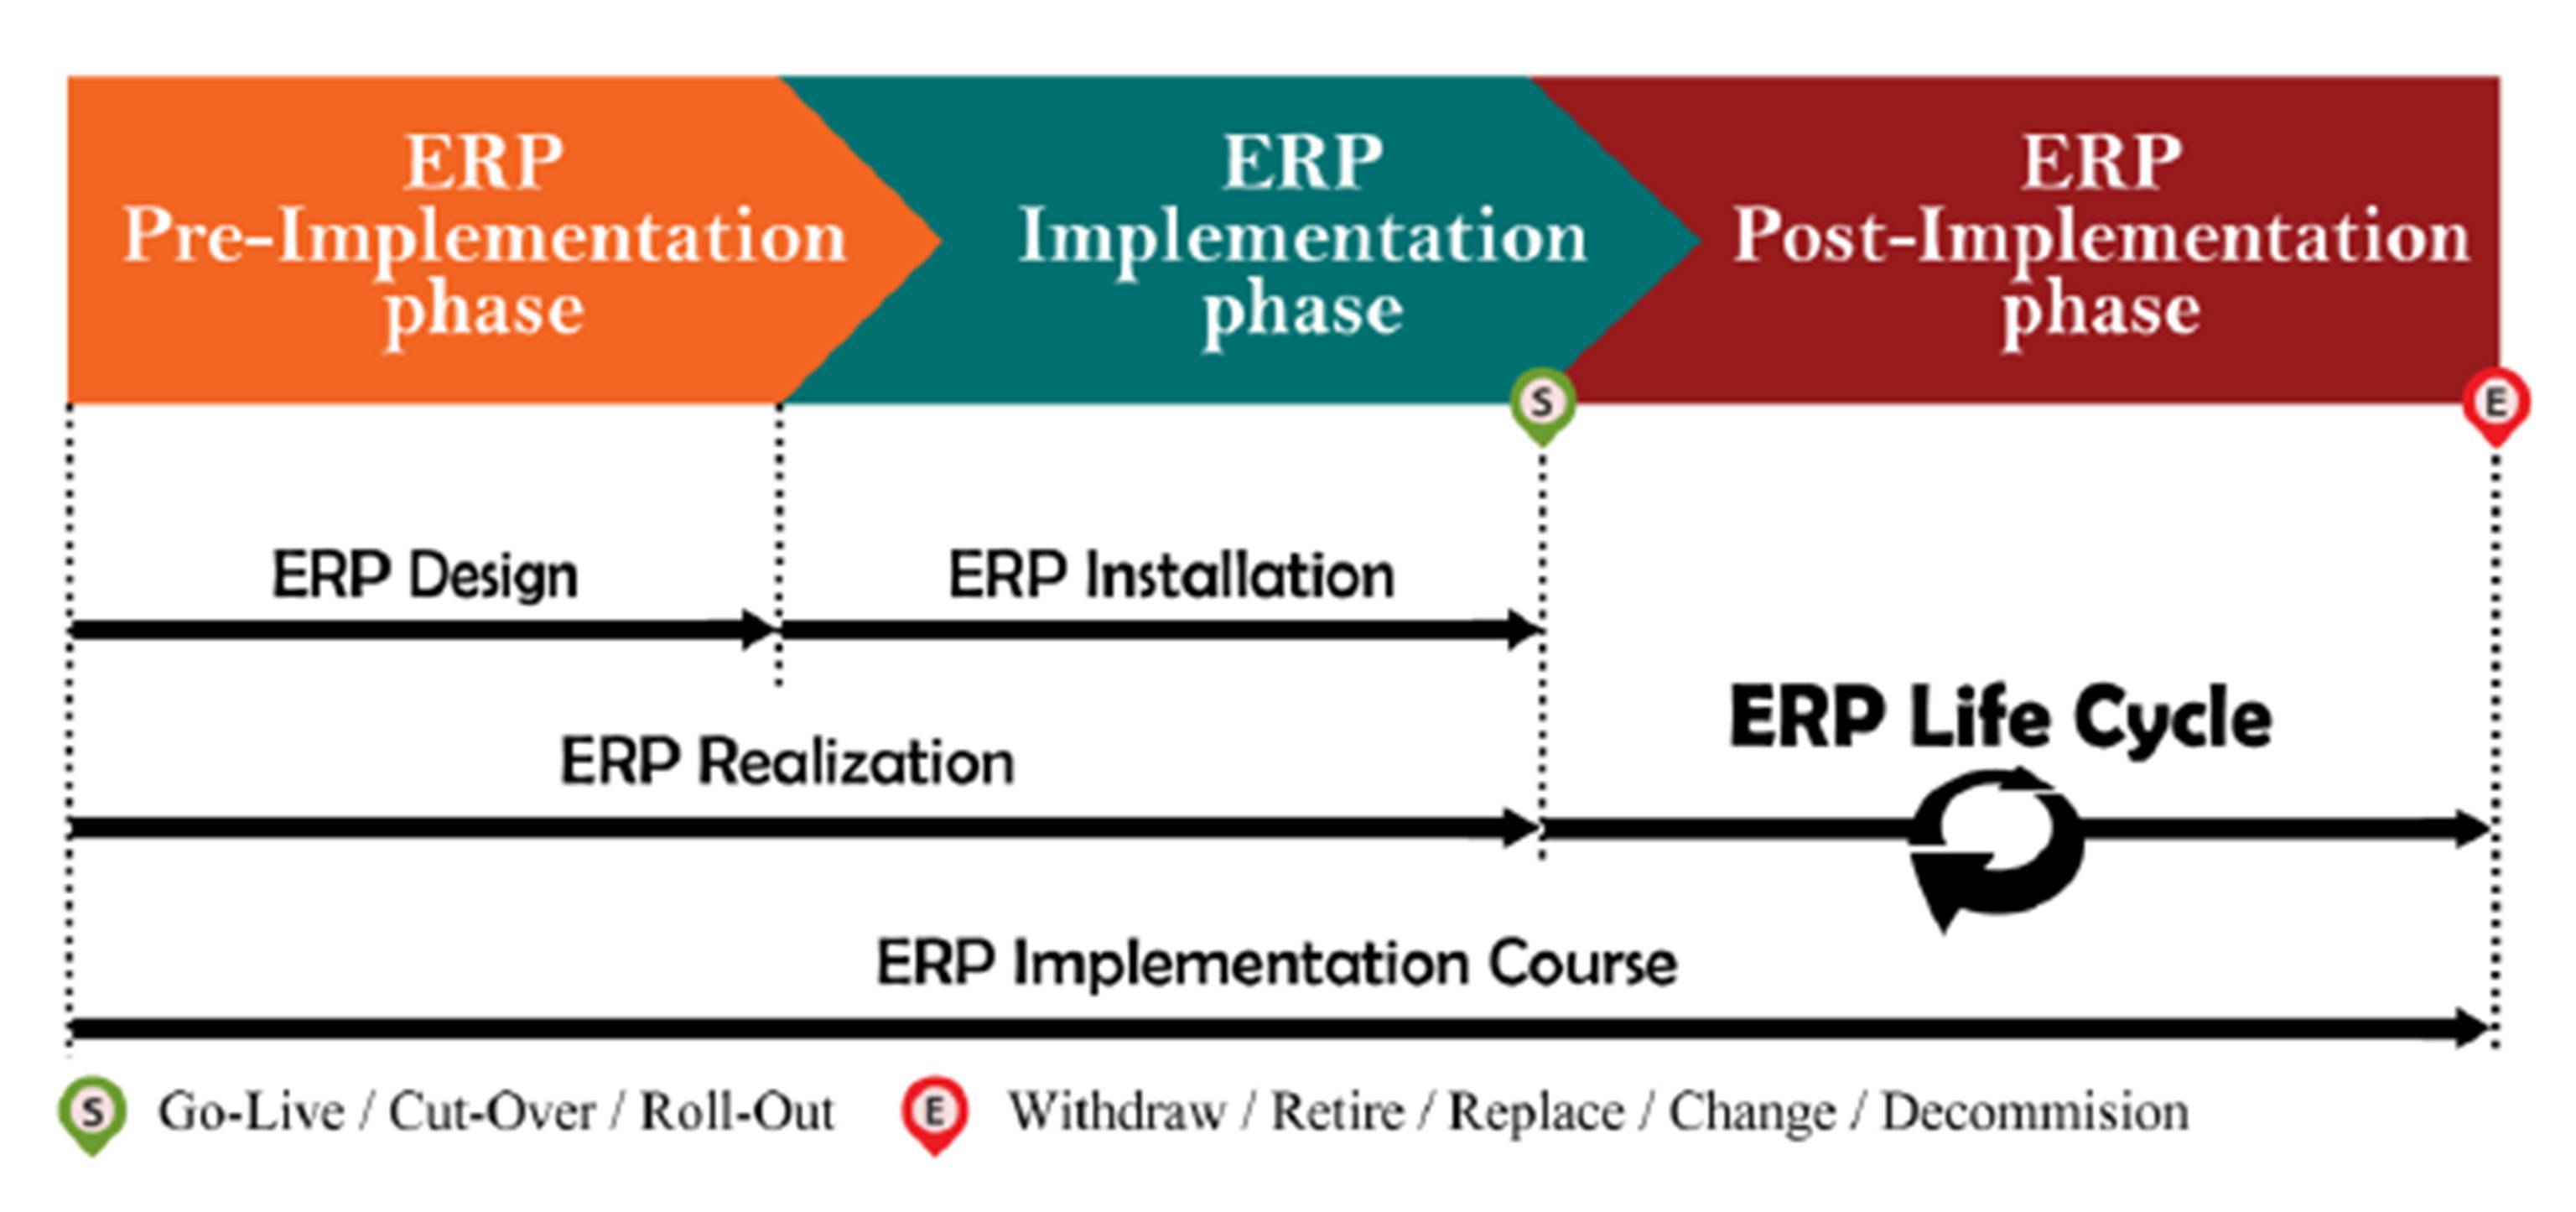 Ibima Publishing Reinventing Erp Life Cycle Model From Go